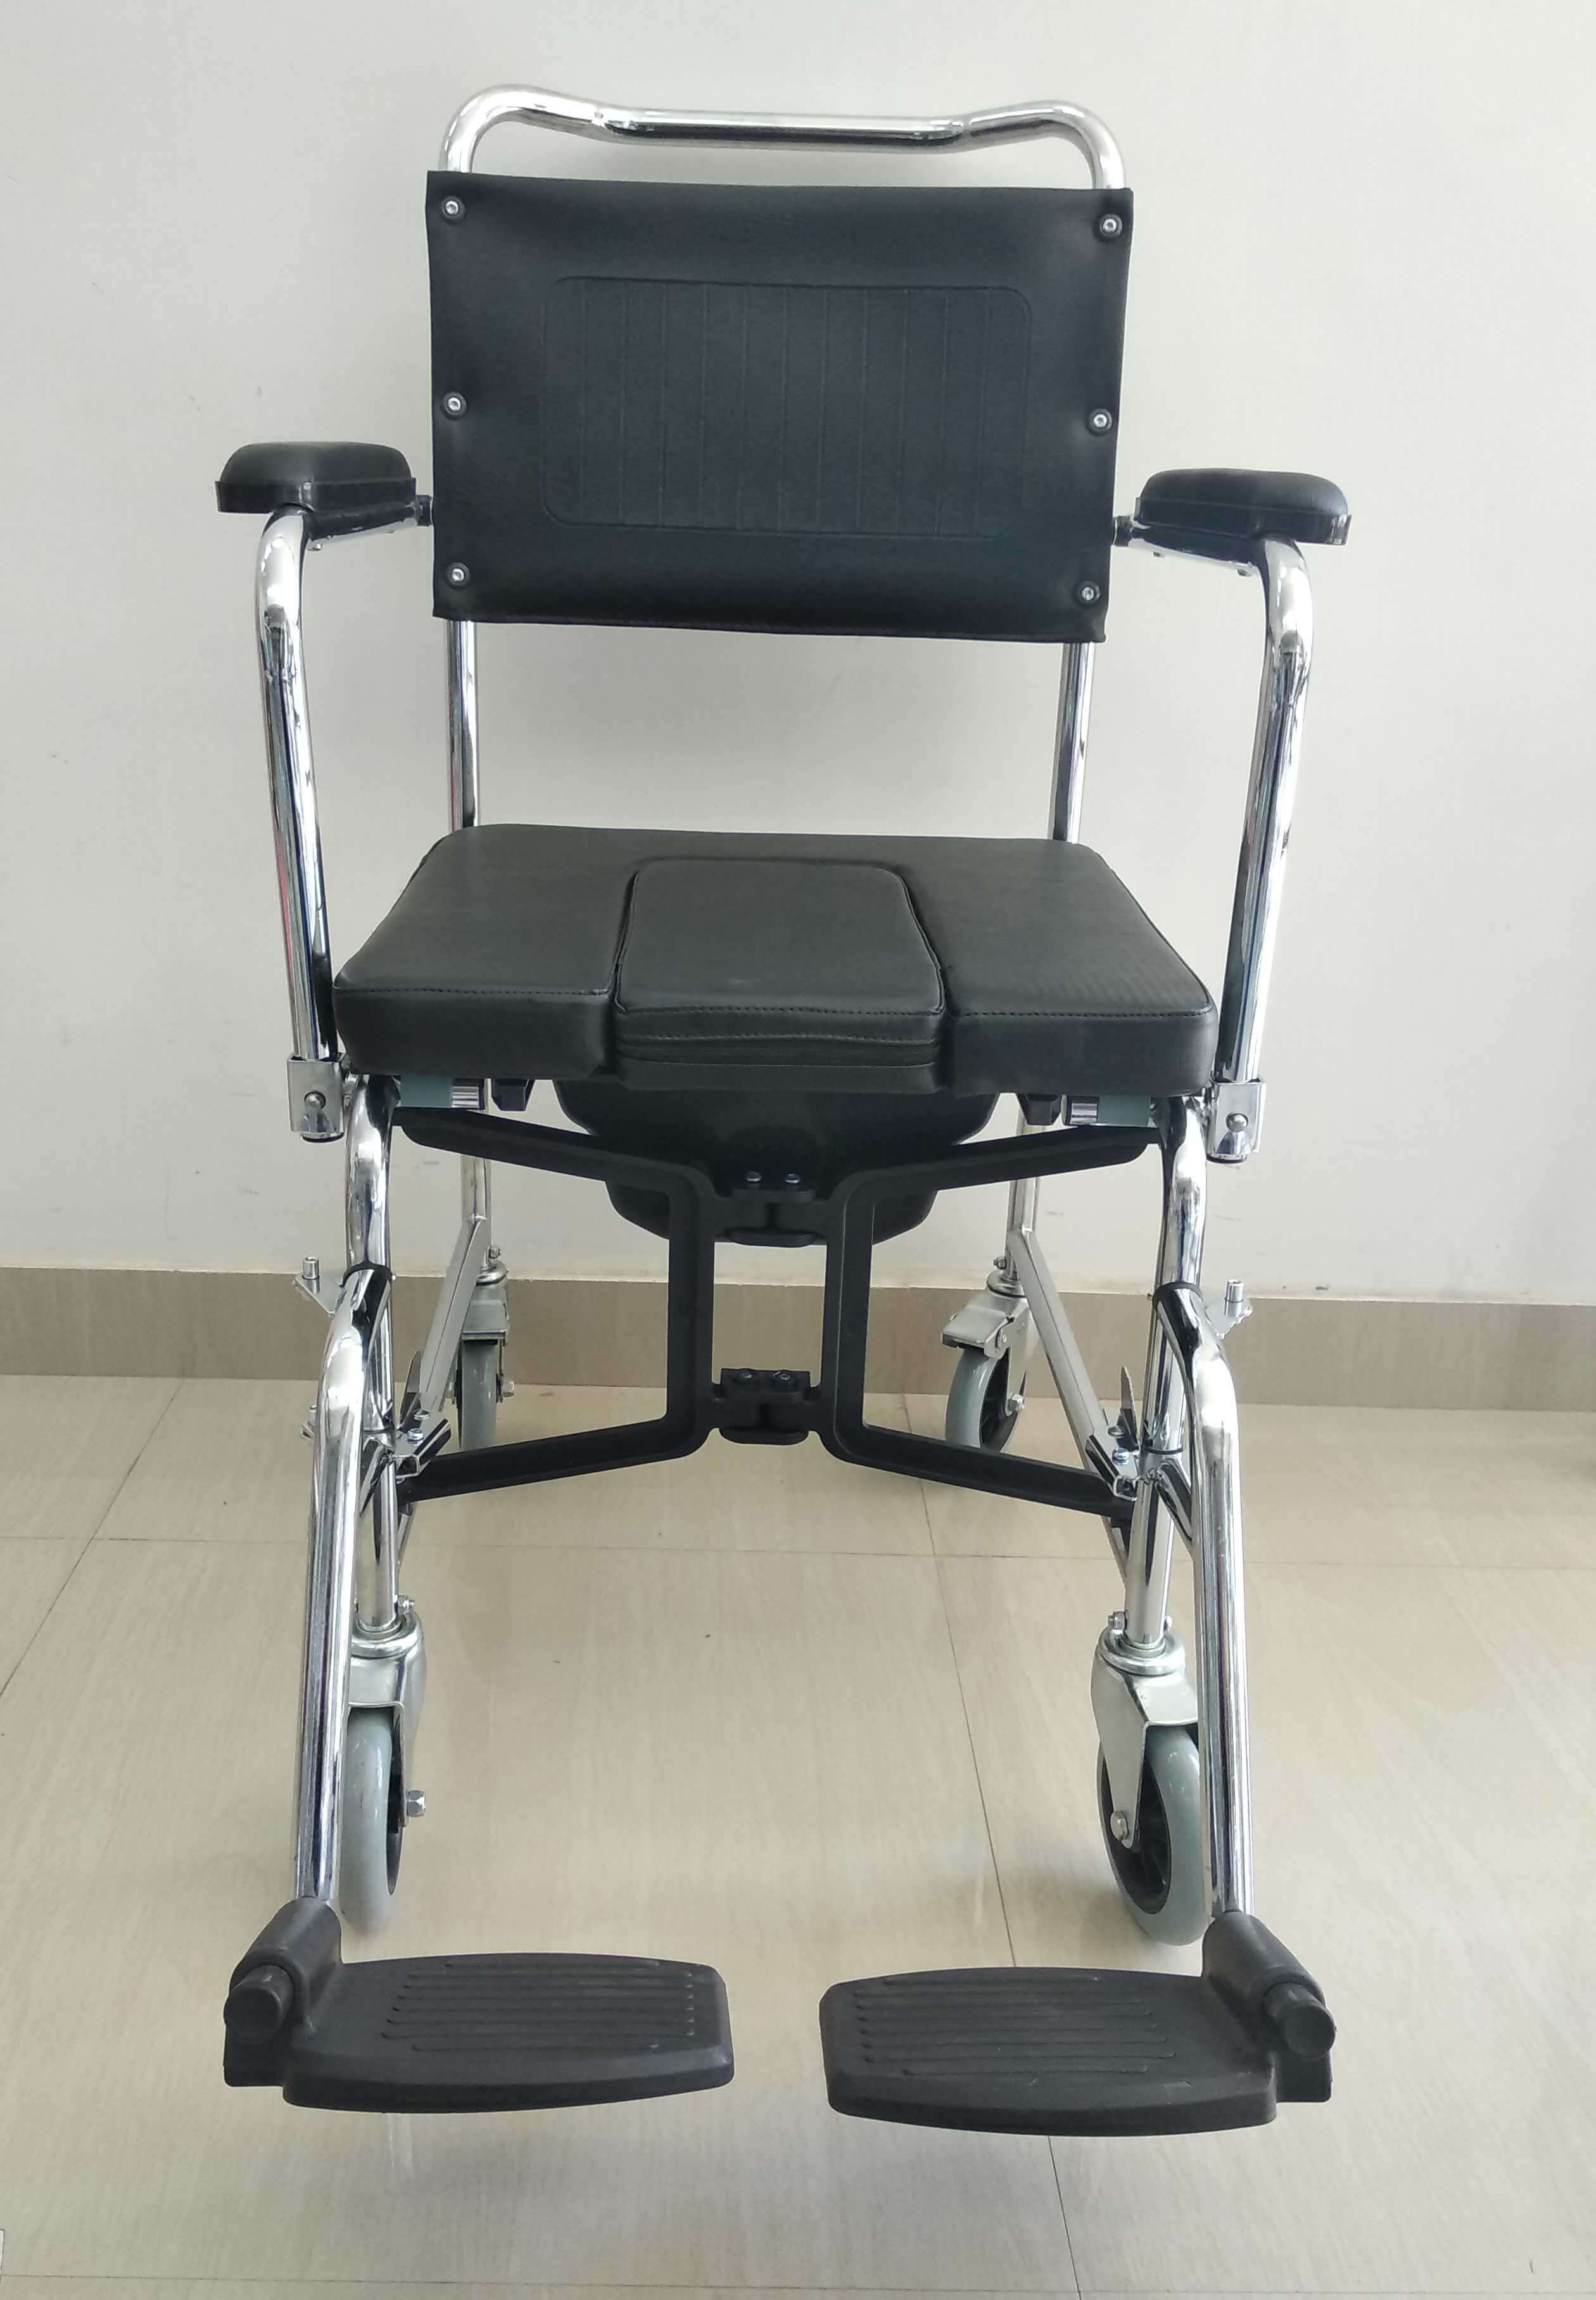 Folding Shower Commode Chair With Wheel Rs6400 Bathroom